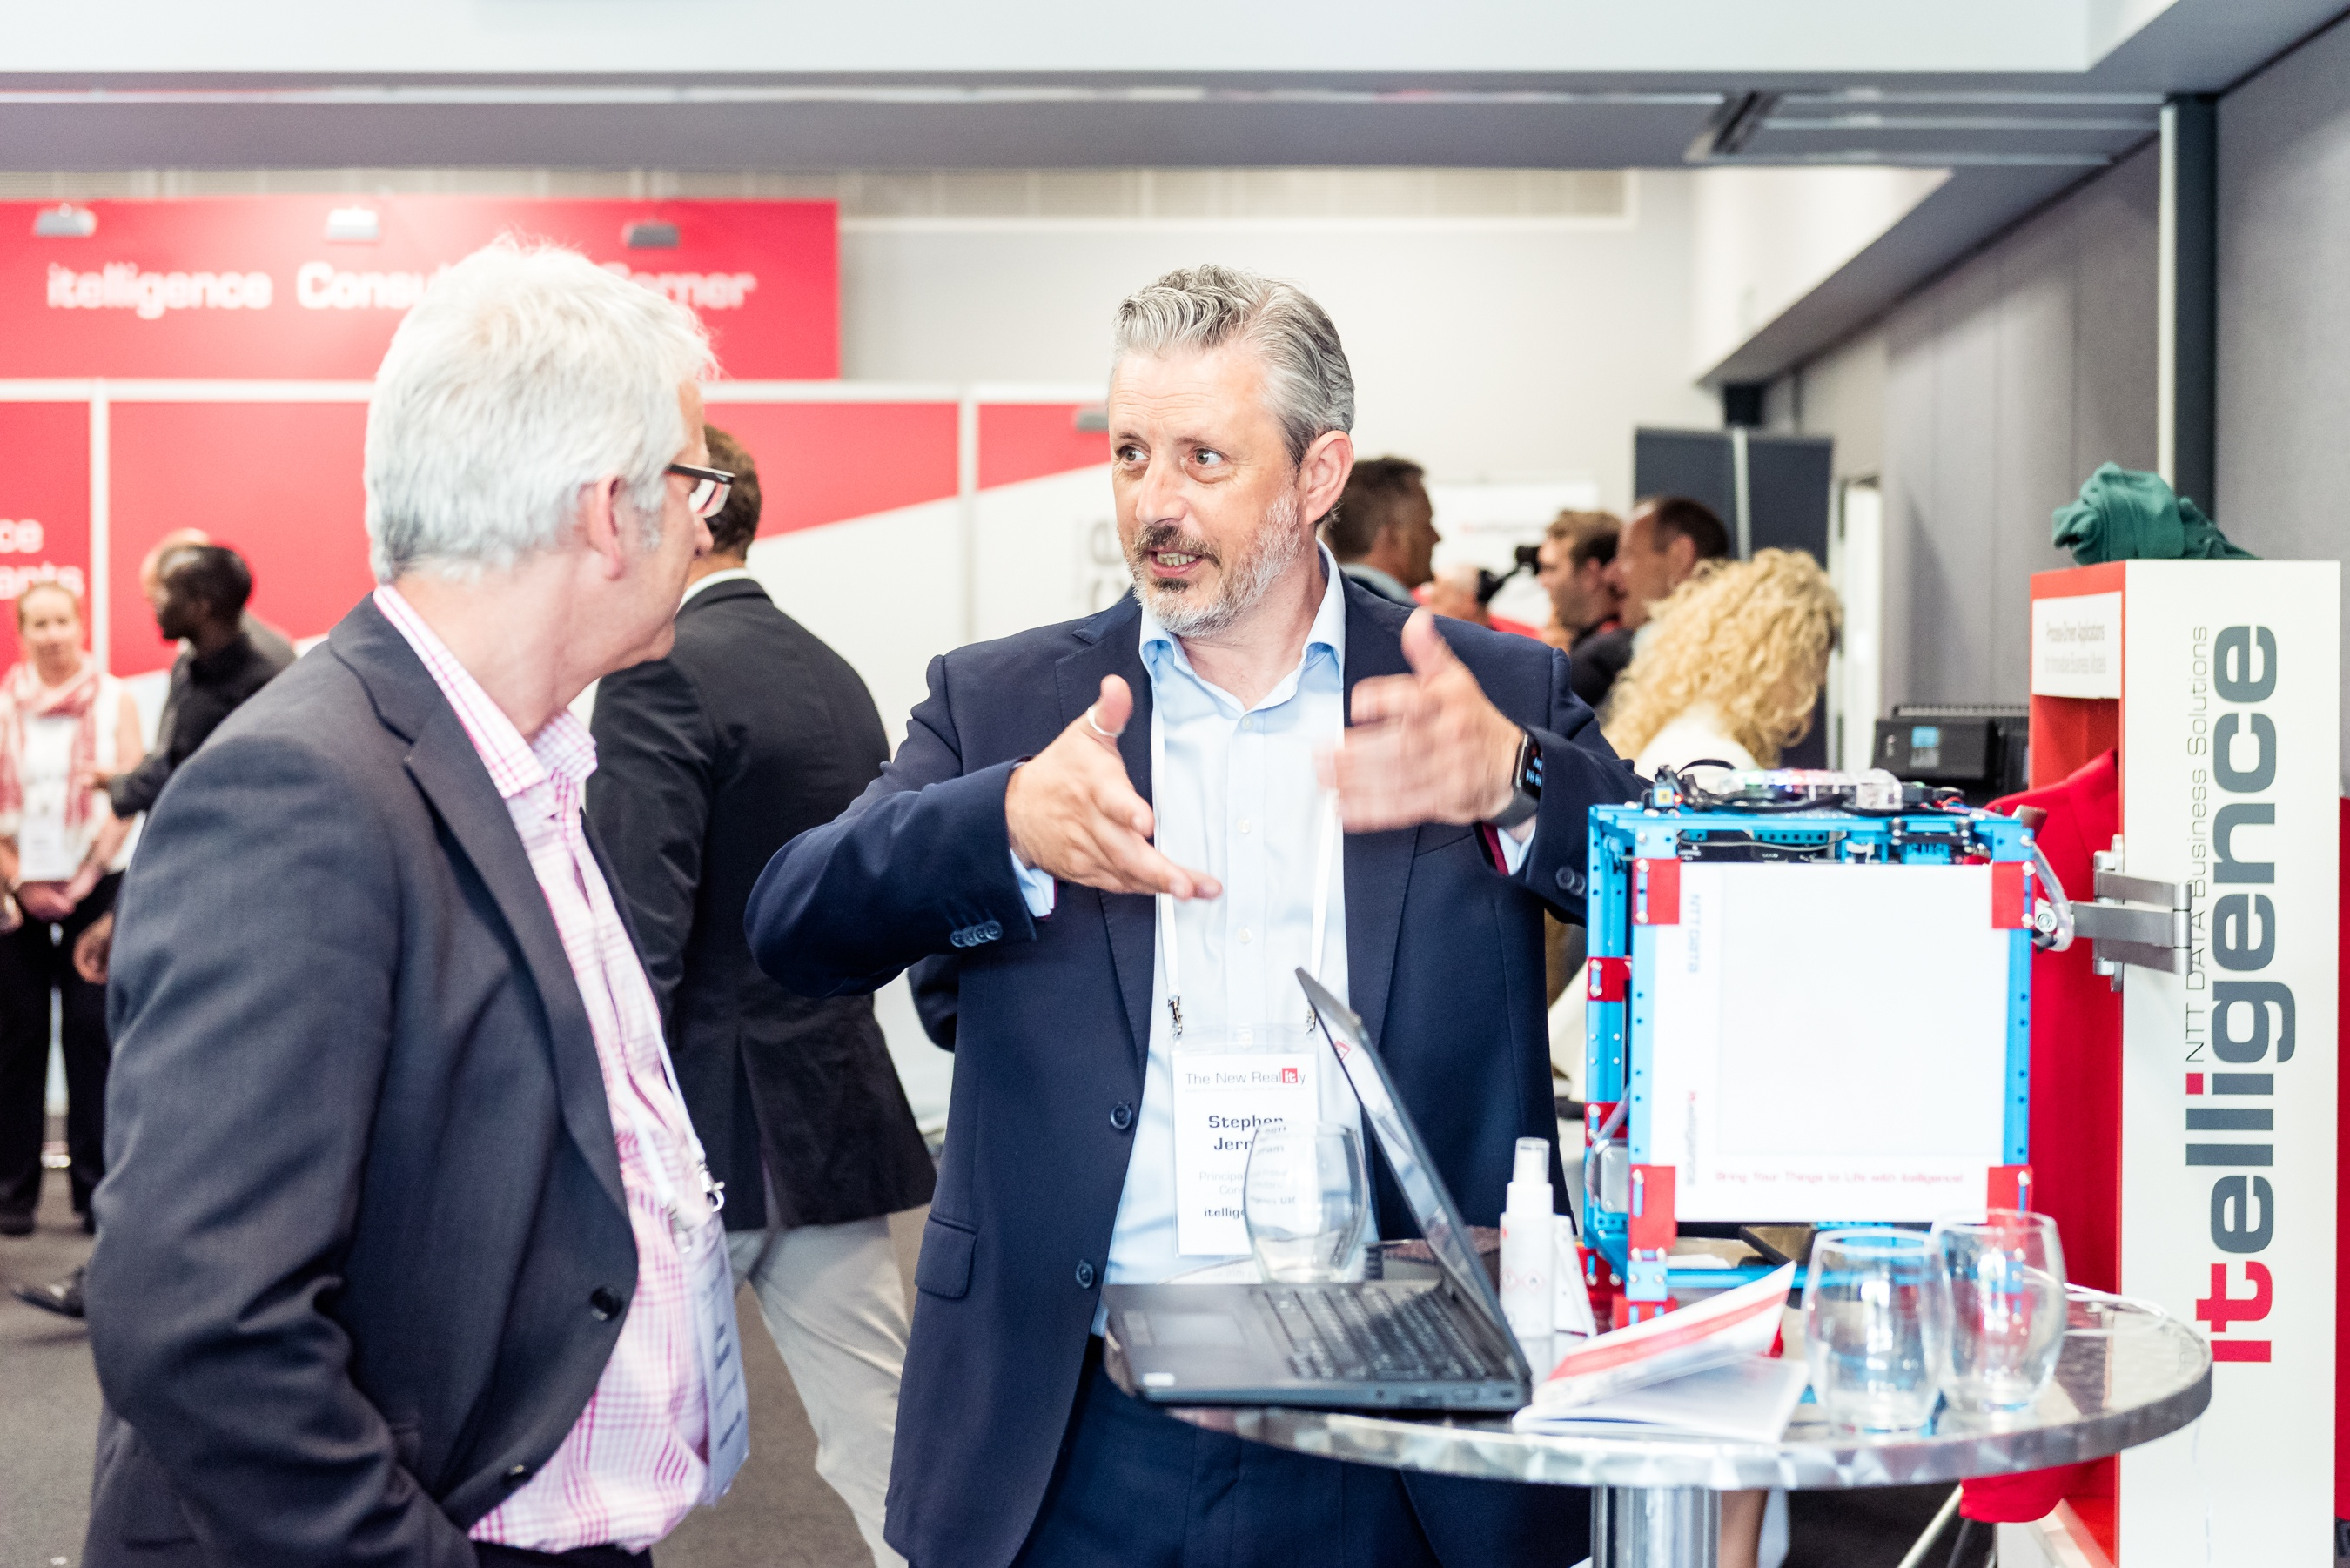 Itelligence-Annual-Conference-2018-QE-II-London-Simon-Callaghan-Photography-1255